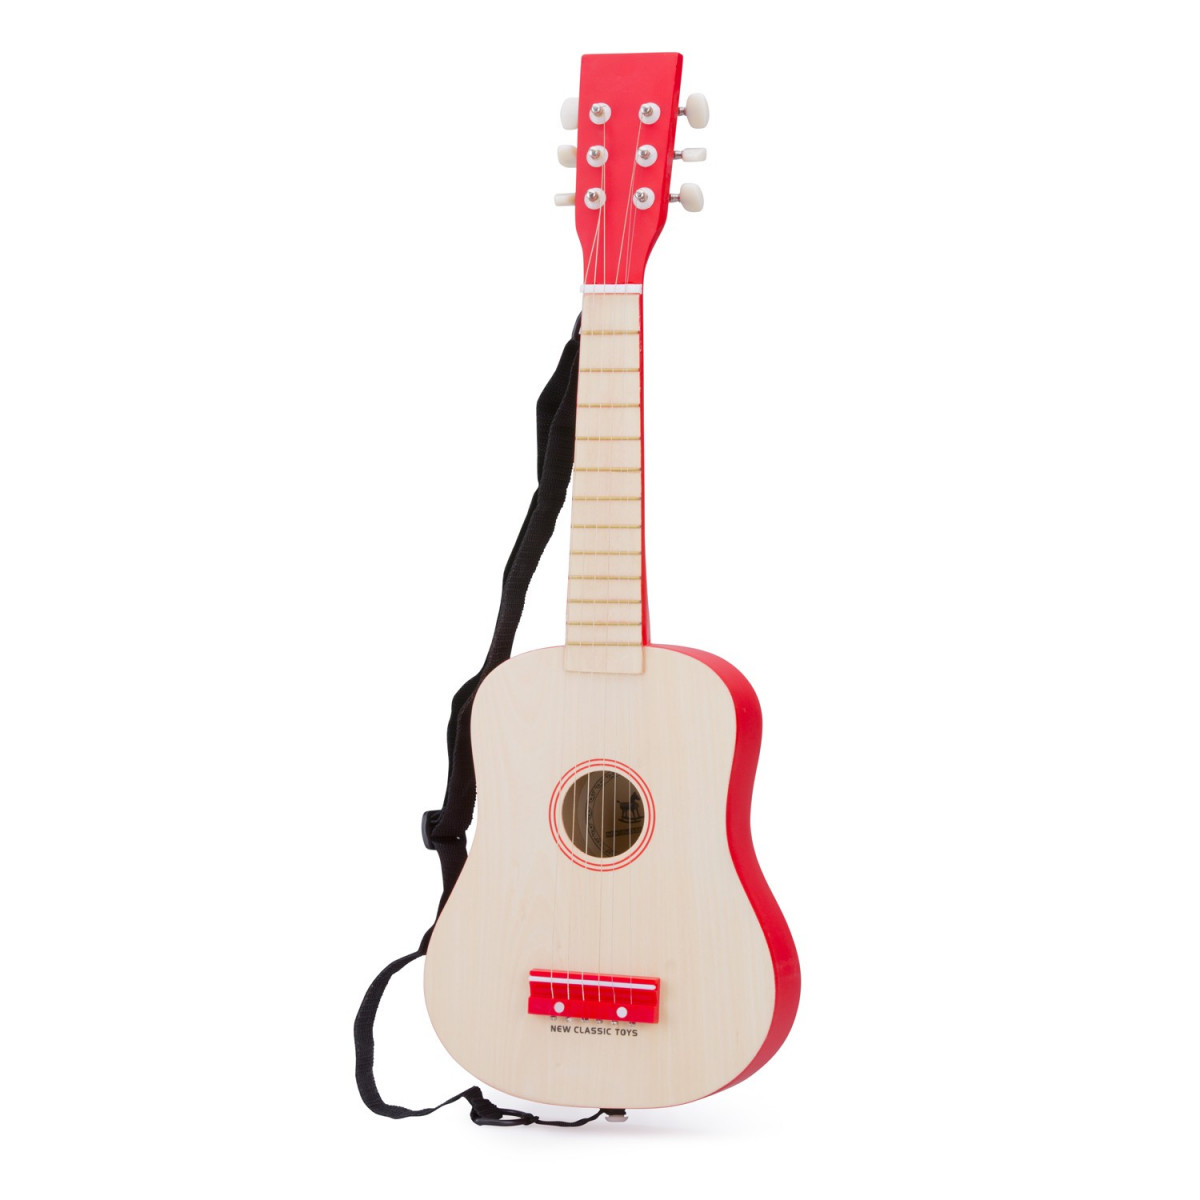 Guitare Naturelle Rouge New Classic Toys 10300